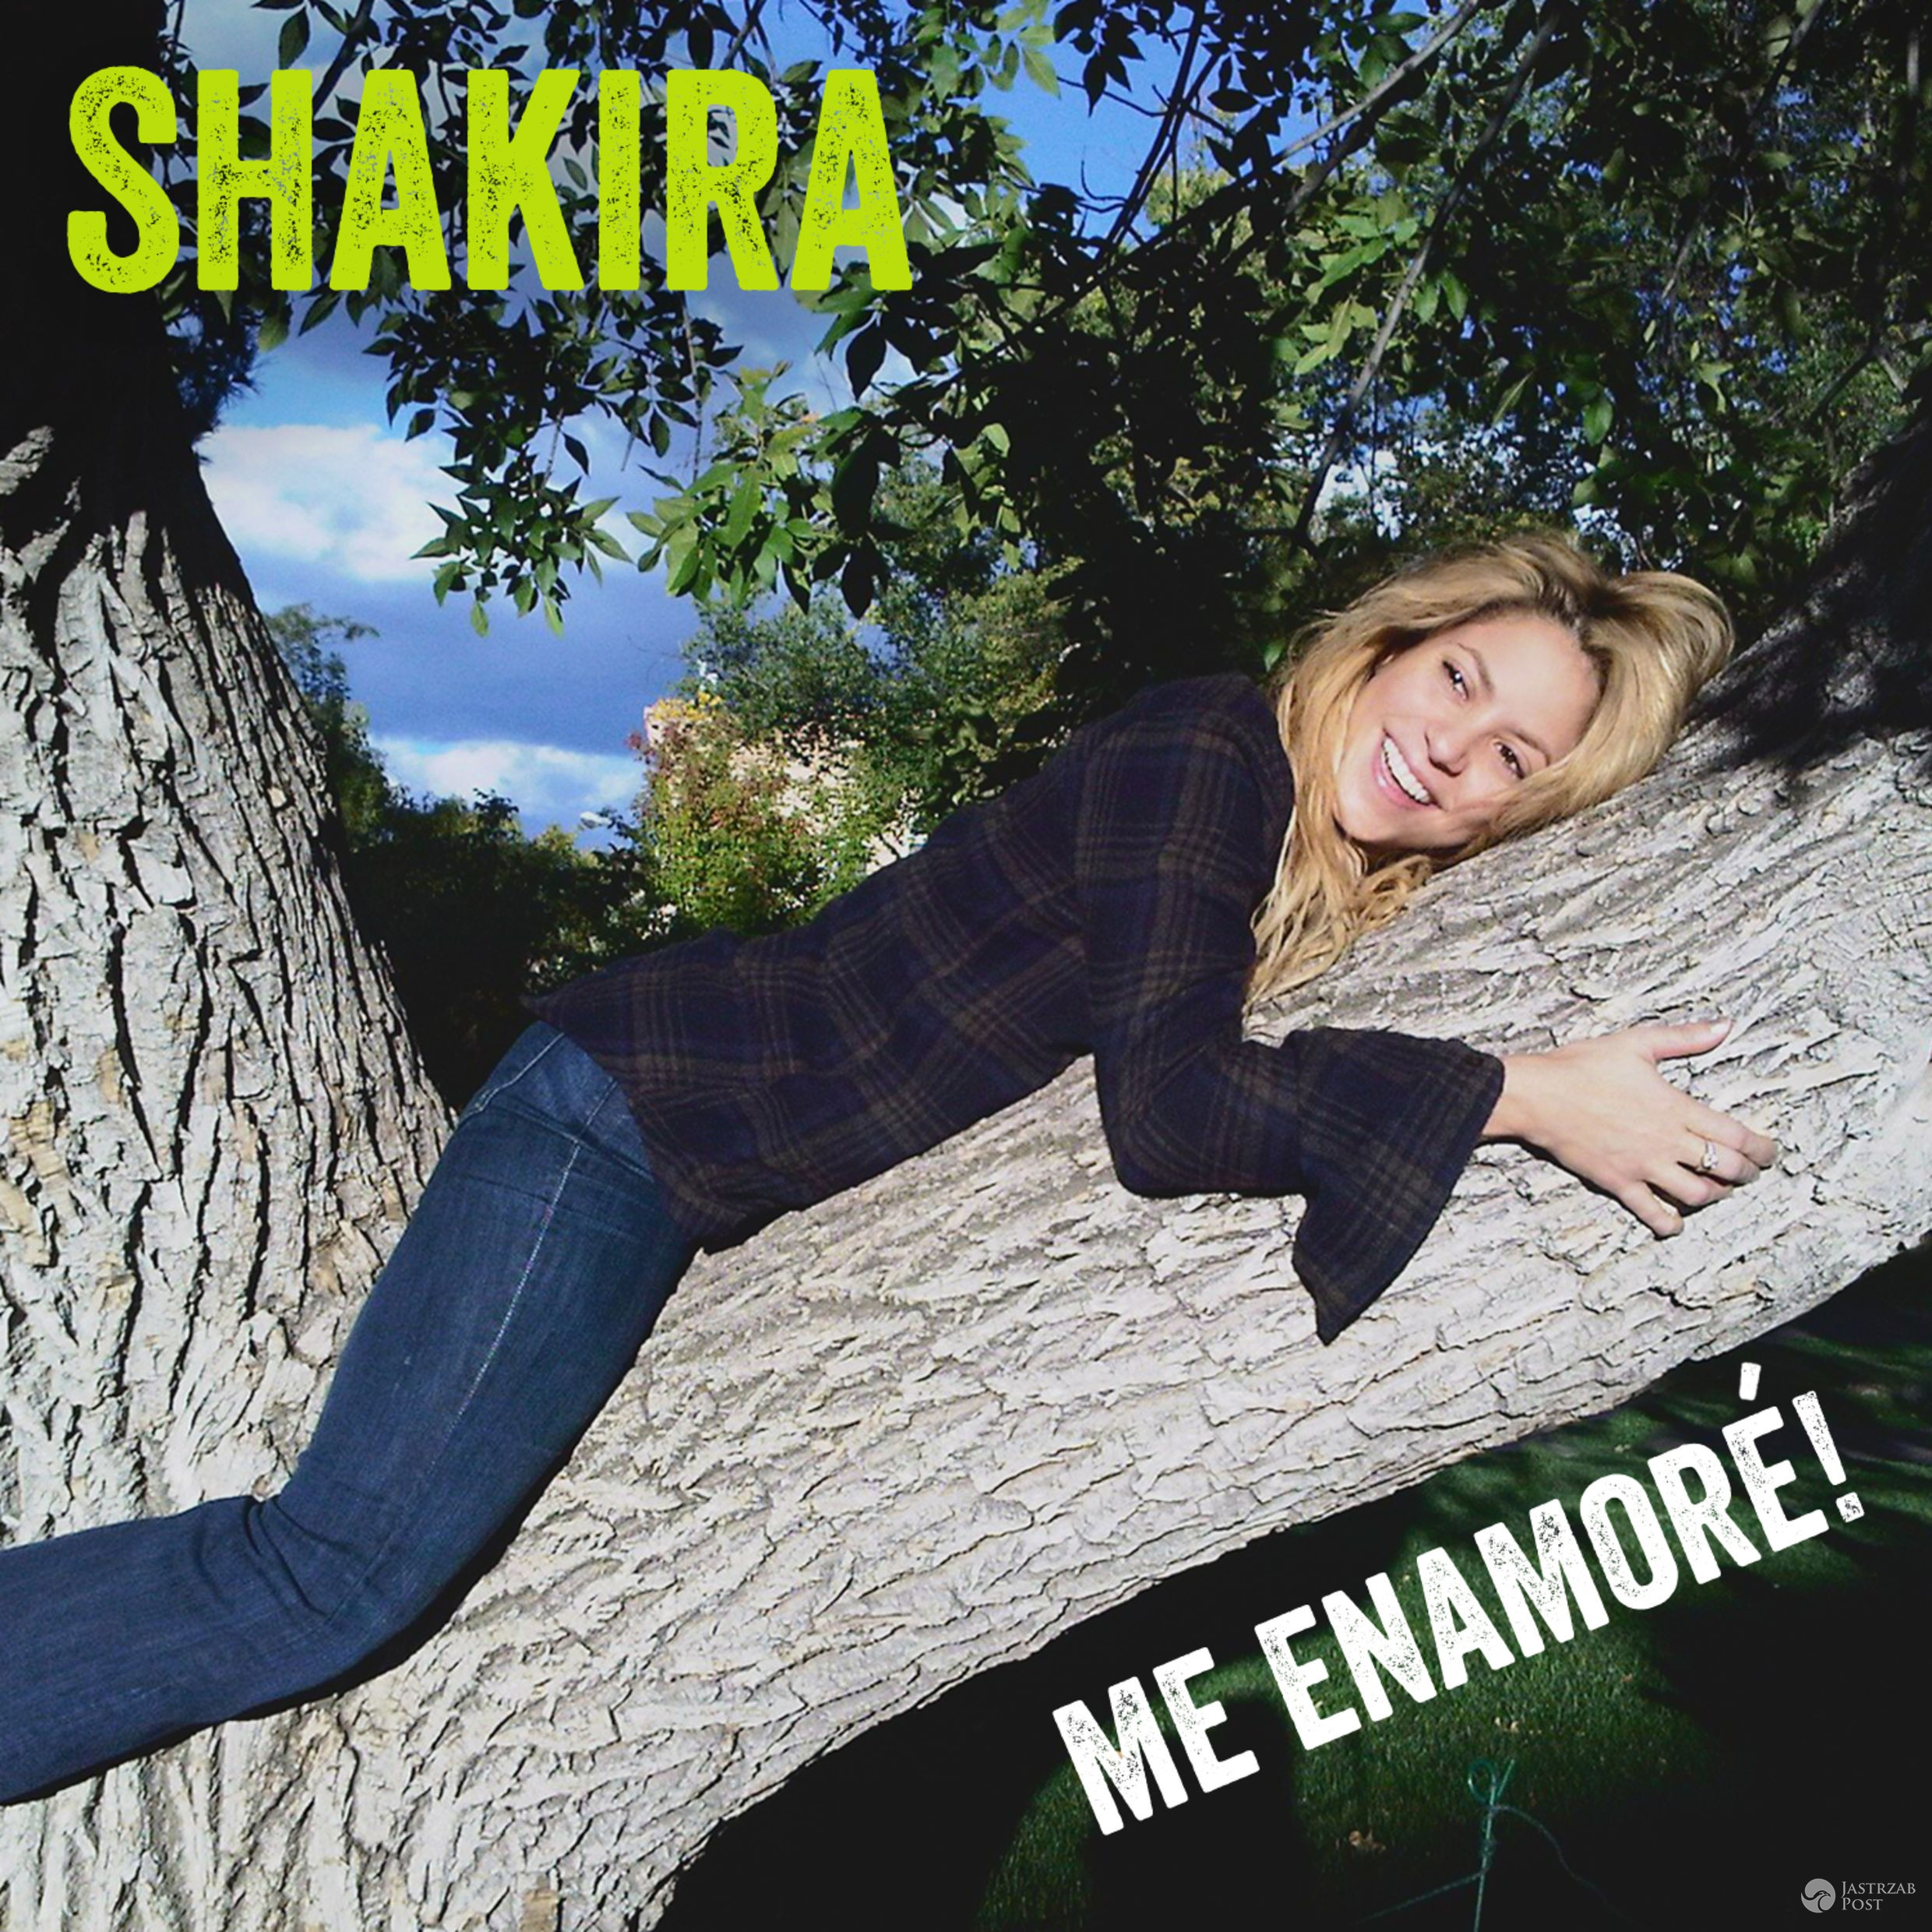 Shakira Me enamore I Fell In Love piosenka